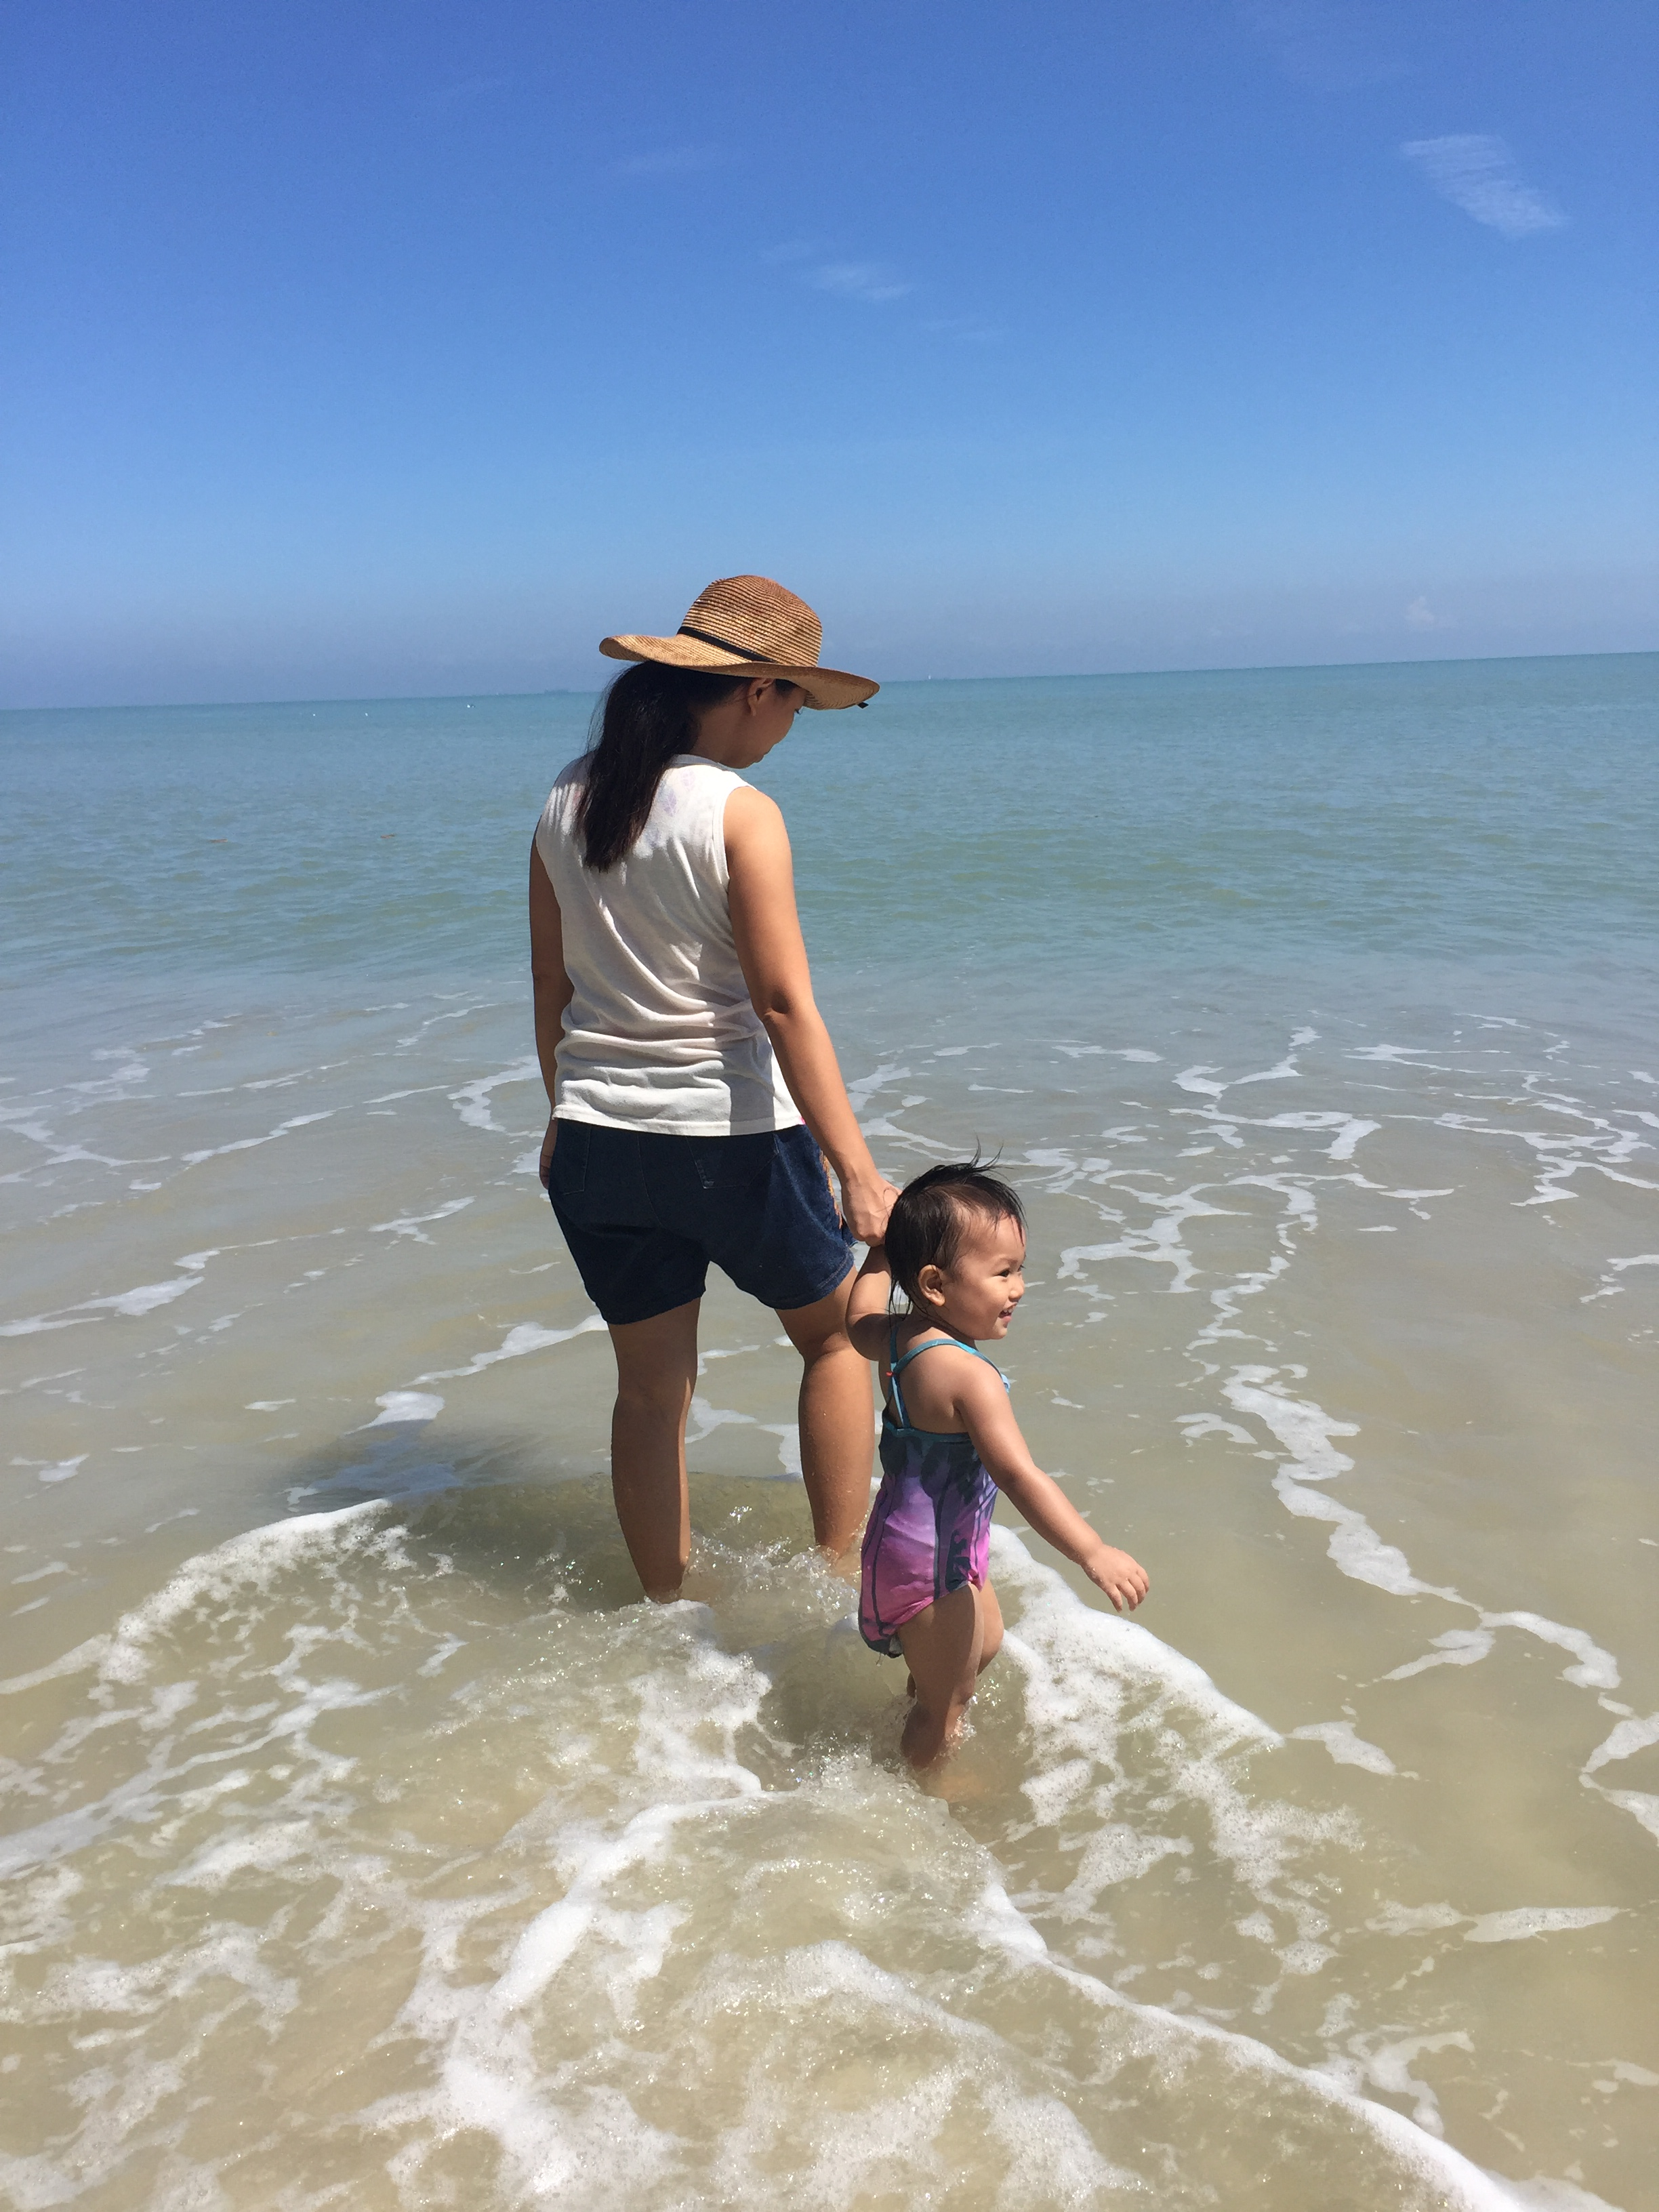 nature rich parenting, beach with toddler, penang beach, Vitamin N book review, richard louv